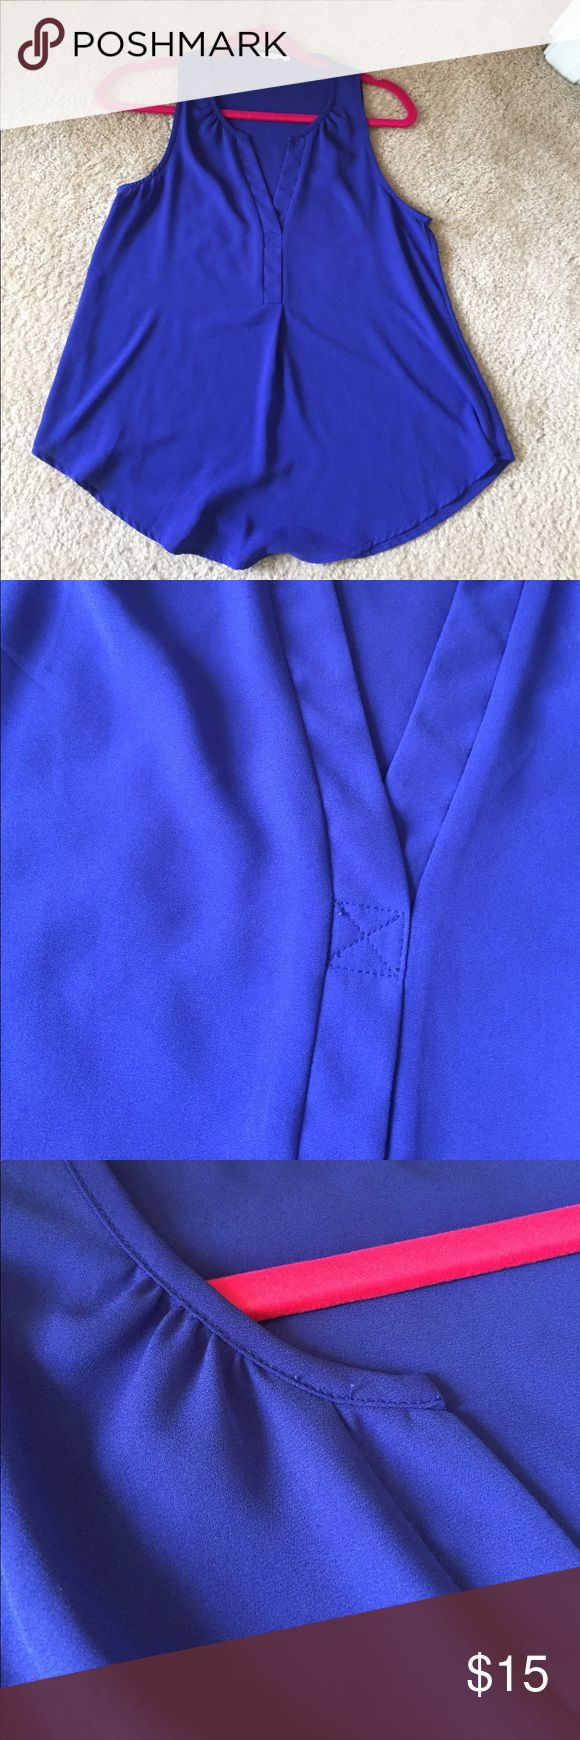 Lush Royal Blue Blouse Bought at Nordstrom 2 years ago. Worn a few times and in excellent condition. Lush Tops Blouses